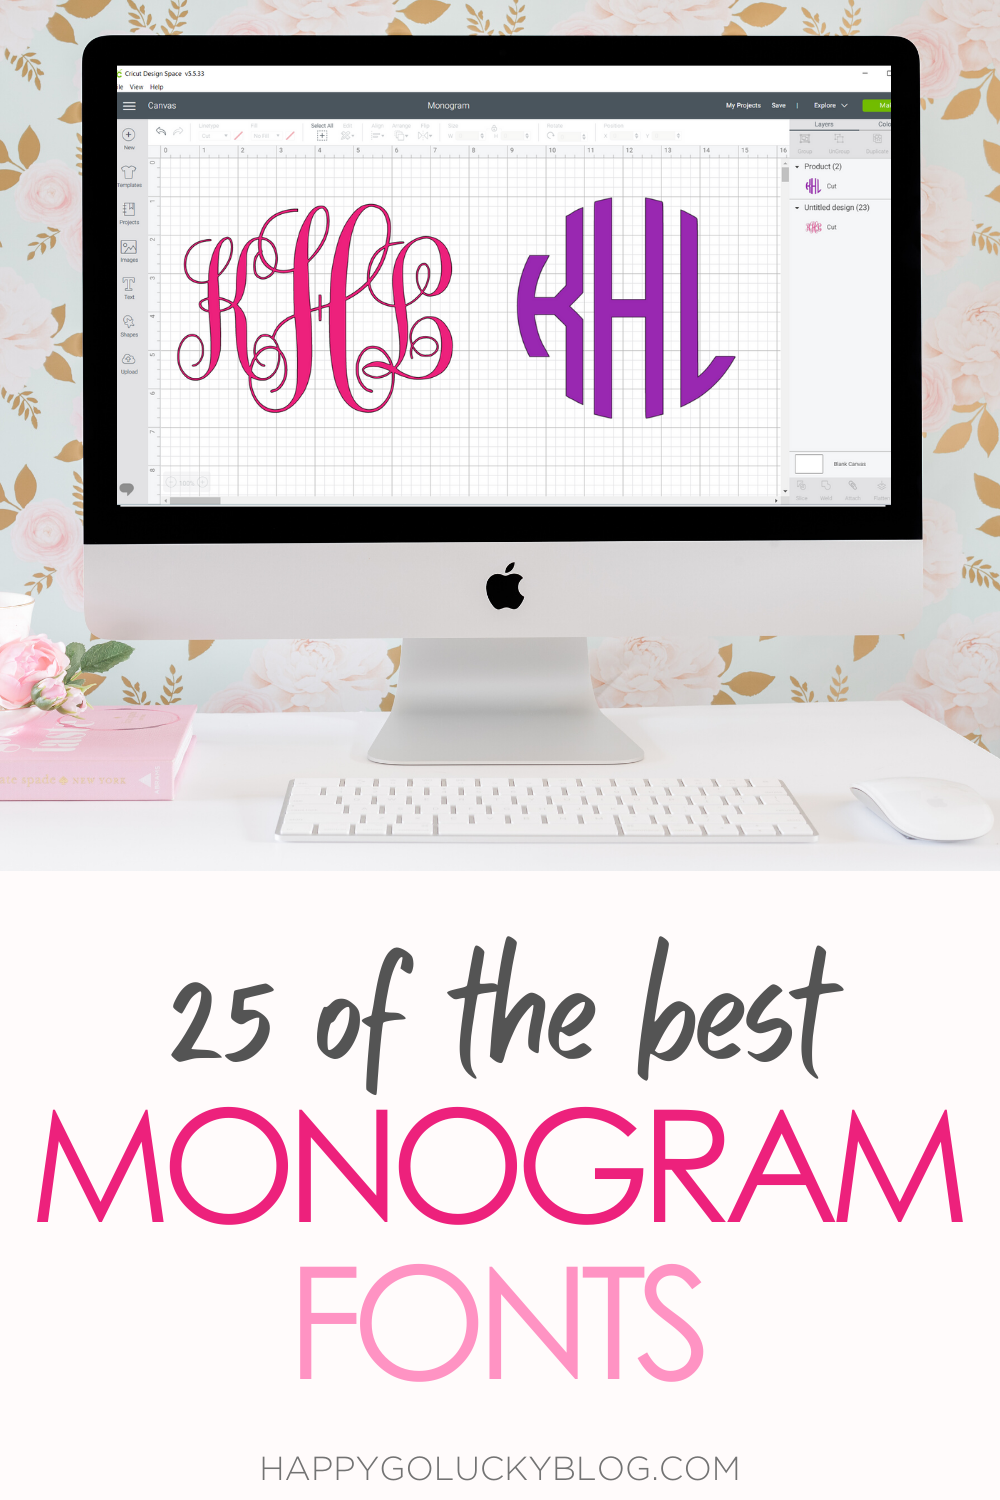 25 of the Best Monogram Fonts